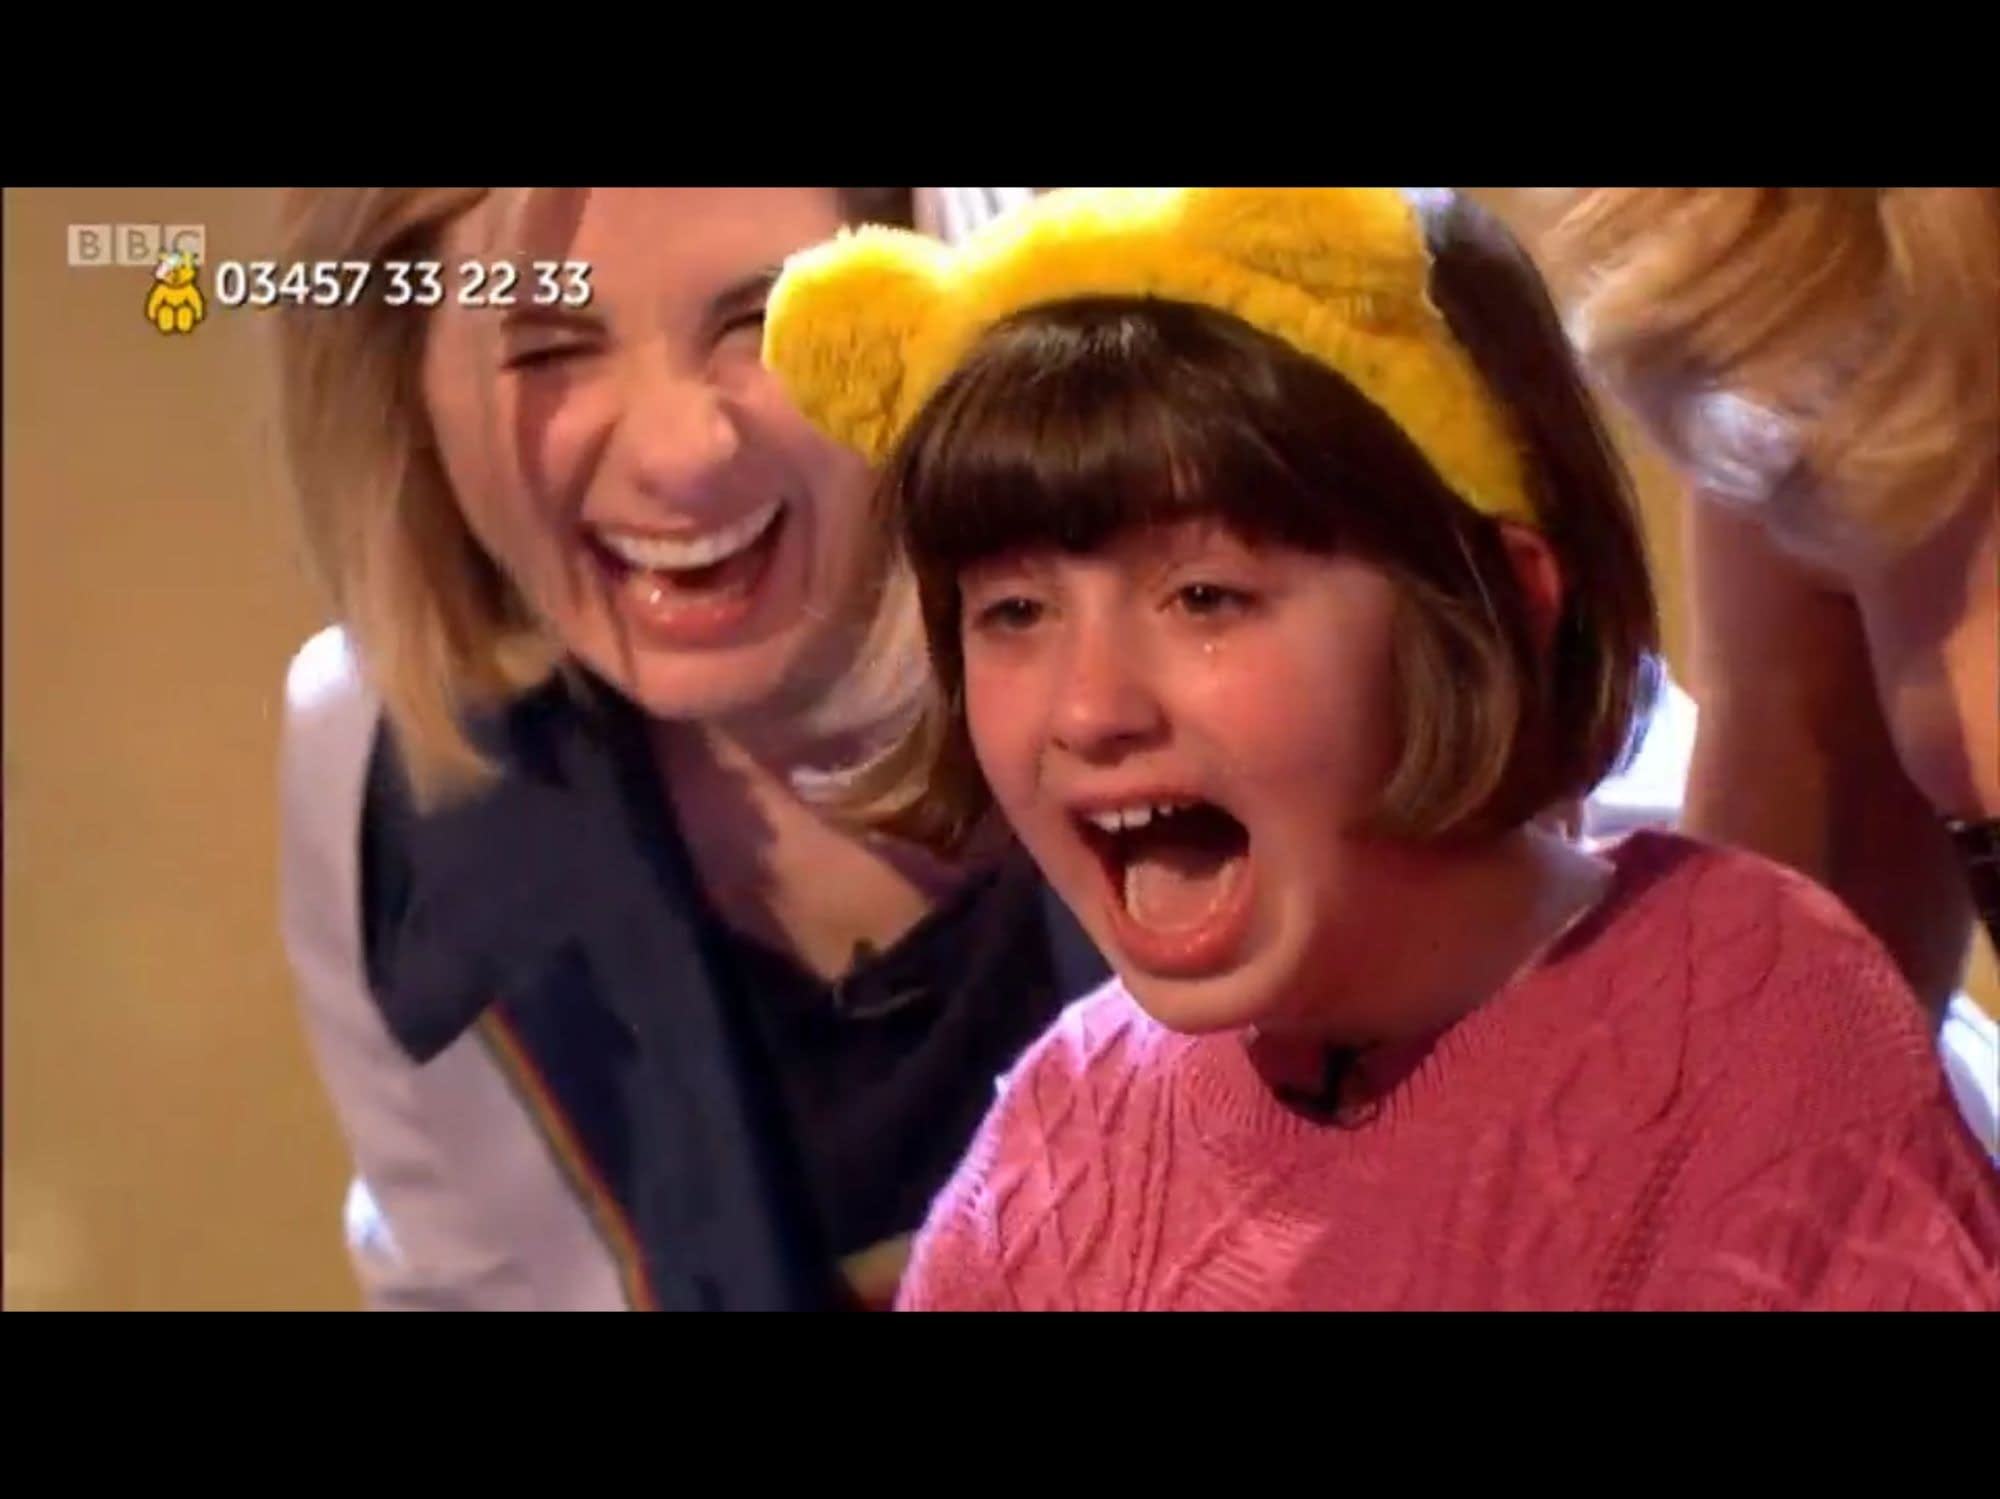 """Doctor Who"": With ""Children in Need"", It's The Doctor & Her Companions to the Rescue!"